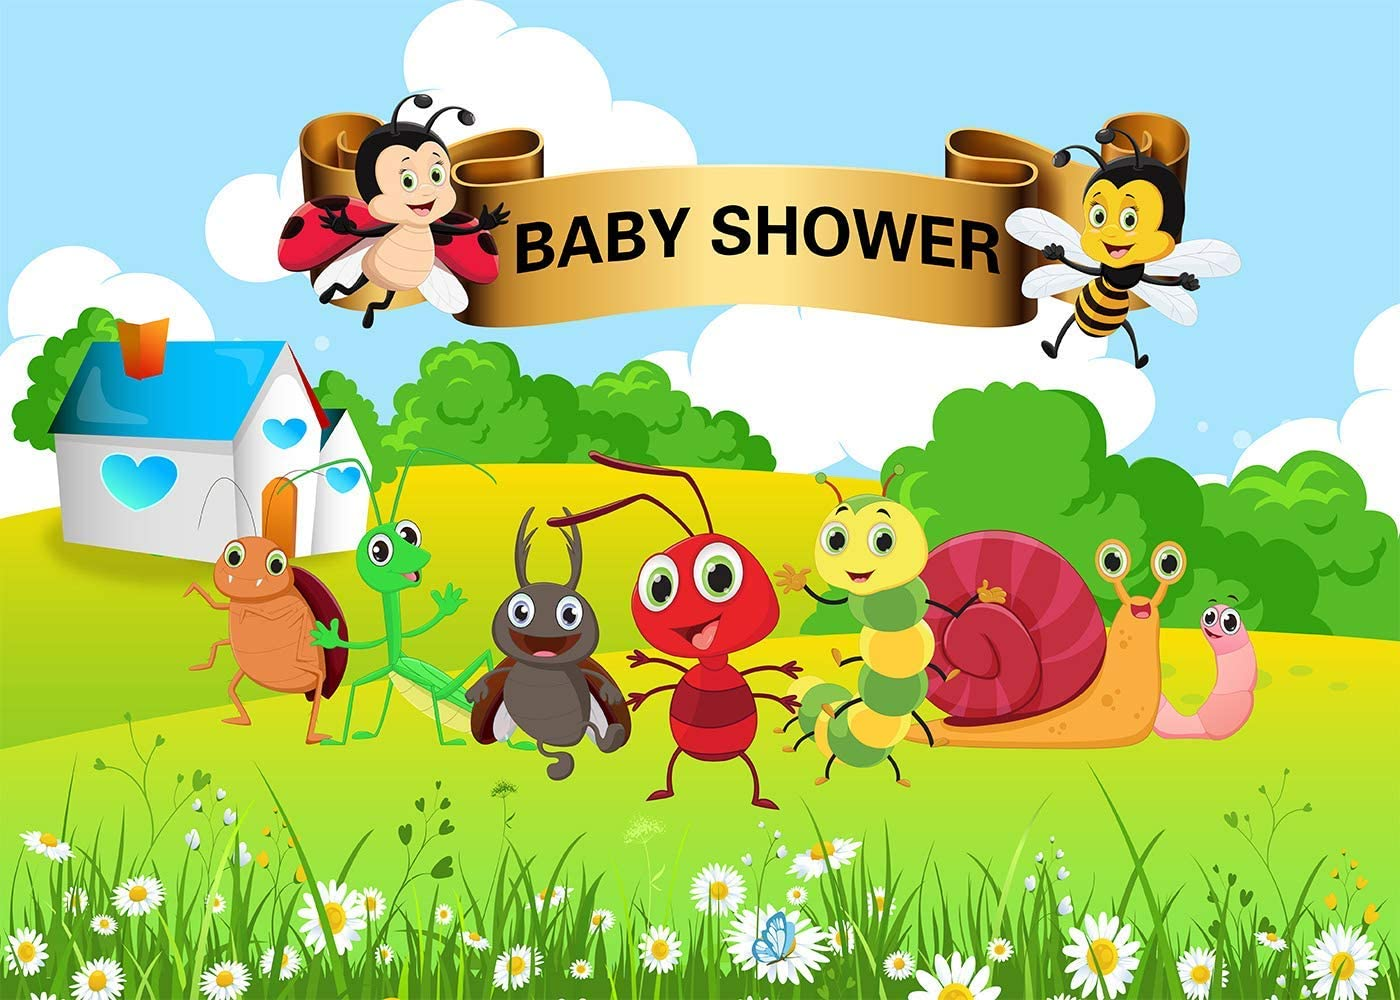 10x6.5ft Baby Shower Background Bee Worm Small Animal Party Photography Backdrop Kids Newborn Photo Props LYFU586